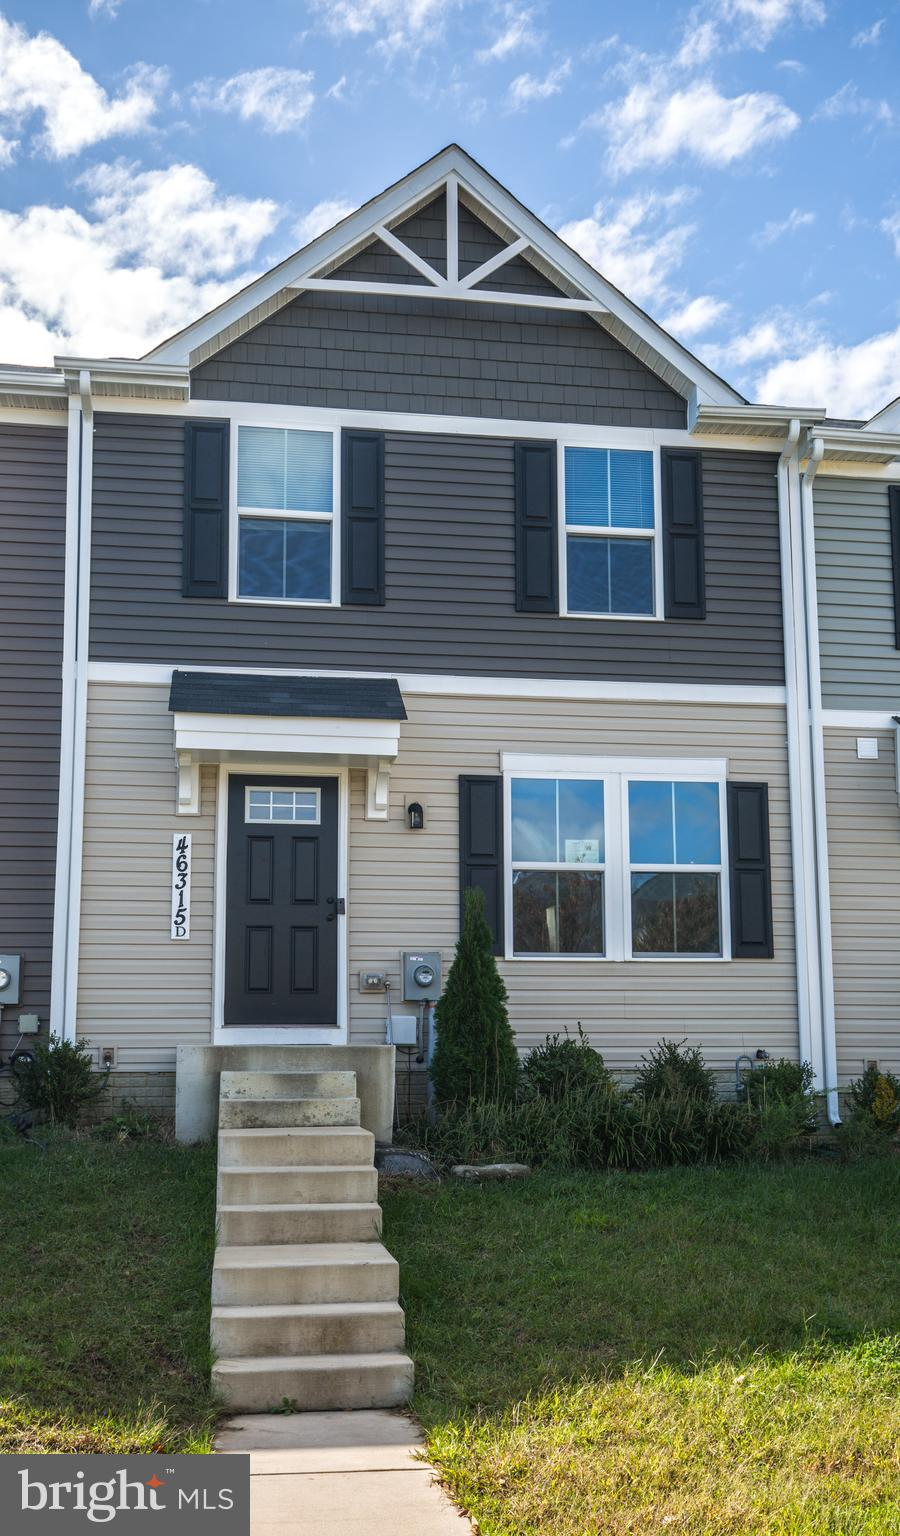 Come see this beautiful 3 bedroom 2 bath townhome located just 1.3 miles from gate 1 of PAX!  Built